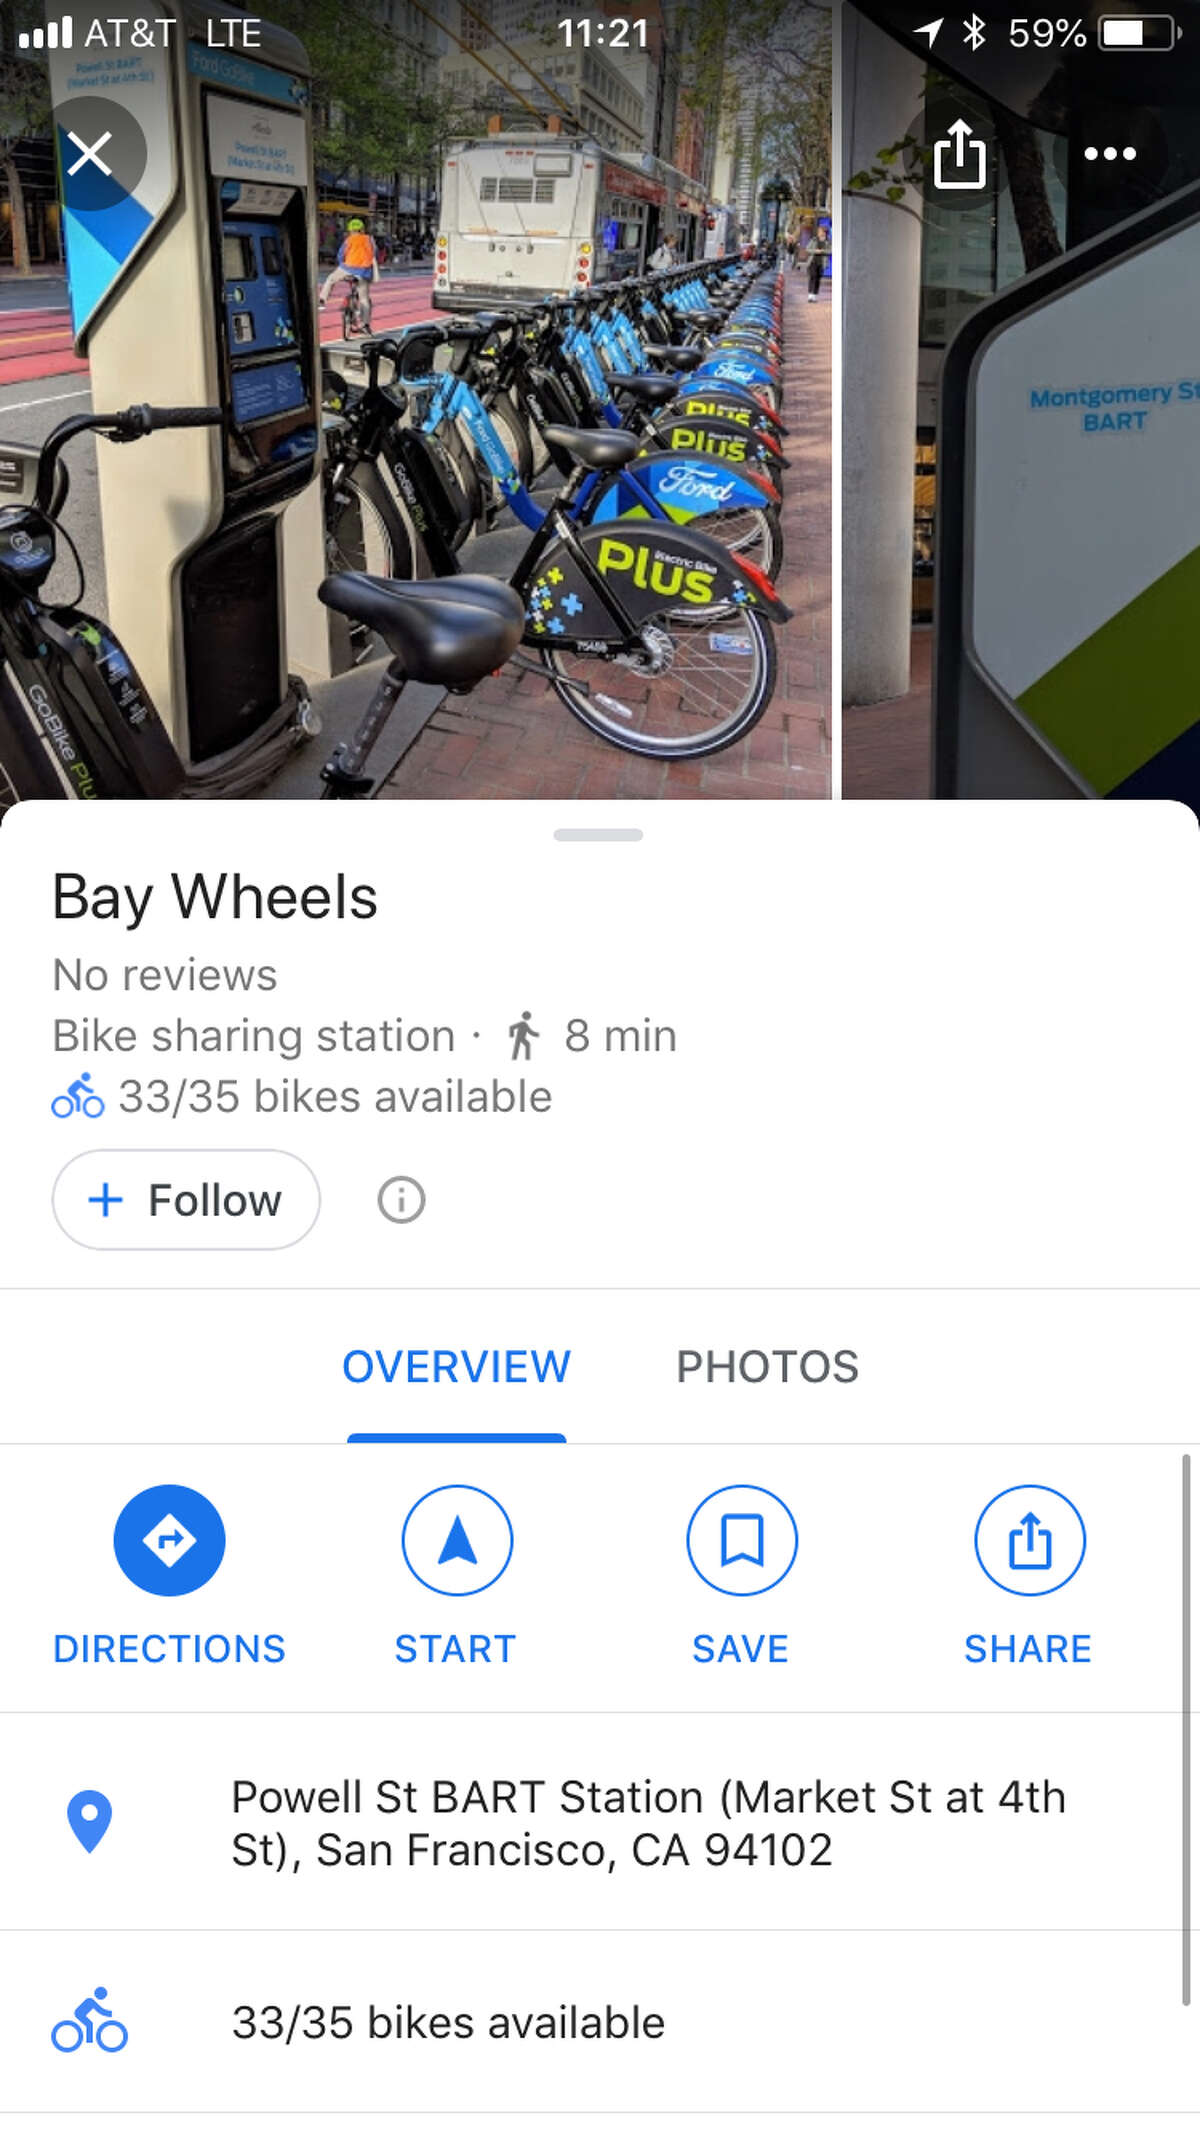 Google Maps can tell you how many bikes are available at Bay Wheels stations.